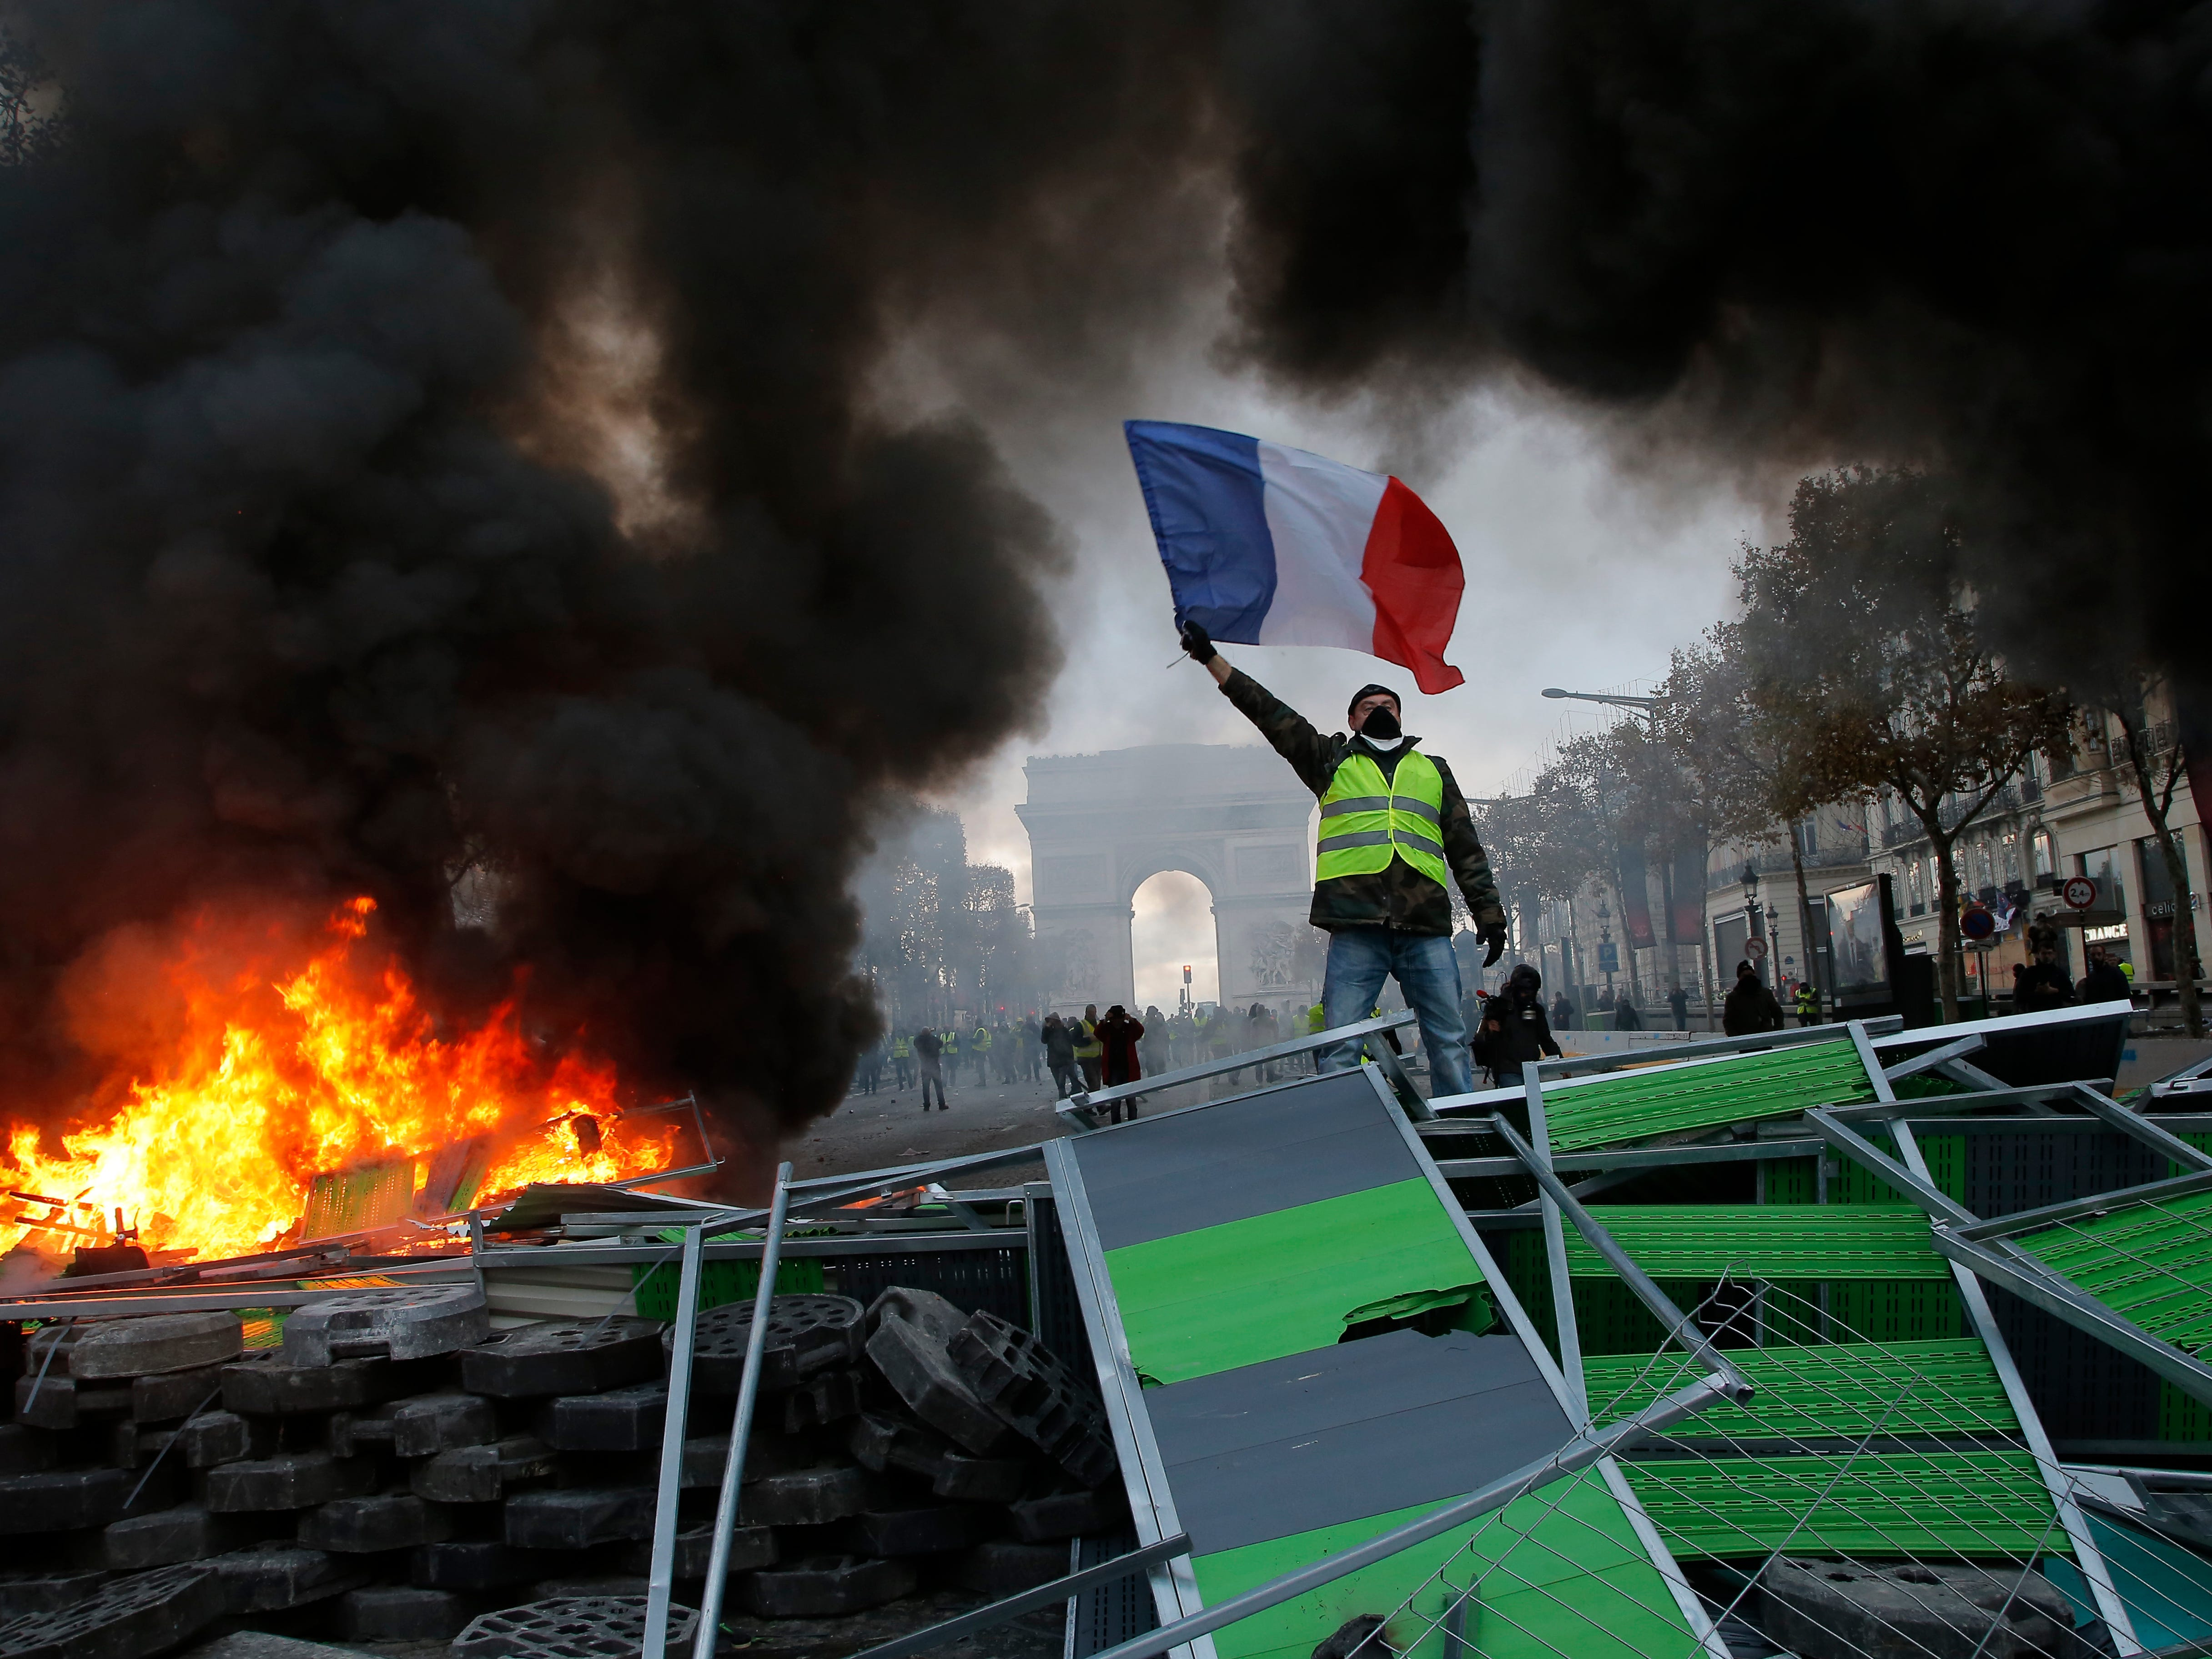 A demonstrator waves the French flag onto a burning barricade on the Champs-Elysees avenue during a demonstration against the rising of the fuel taxes, Saturday, Nov. 24, 2018 in Paris.